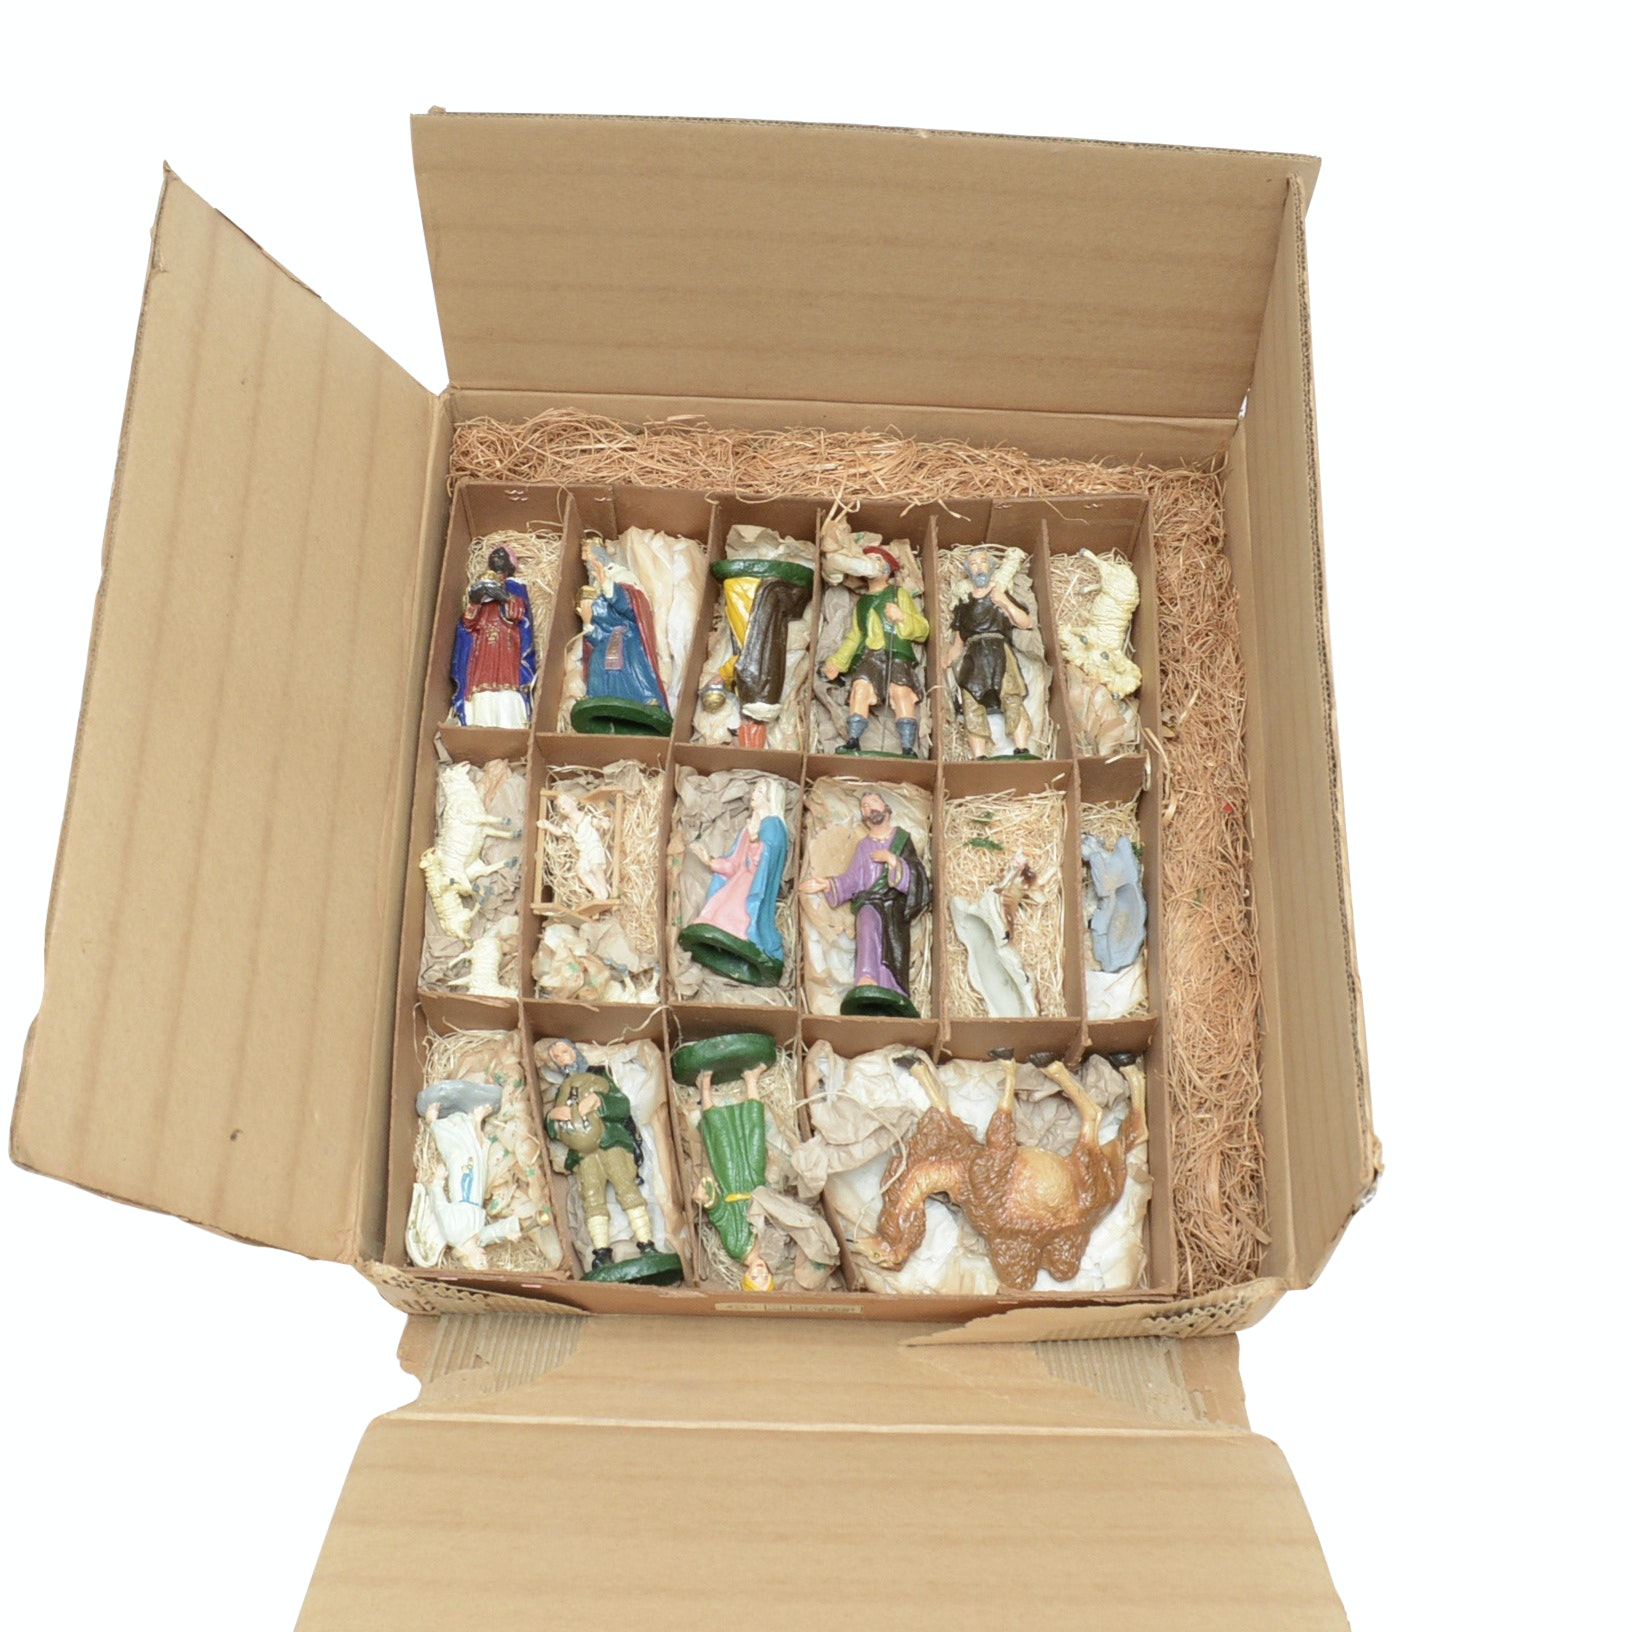 Vintage Wooden Nativity Figurines